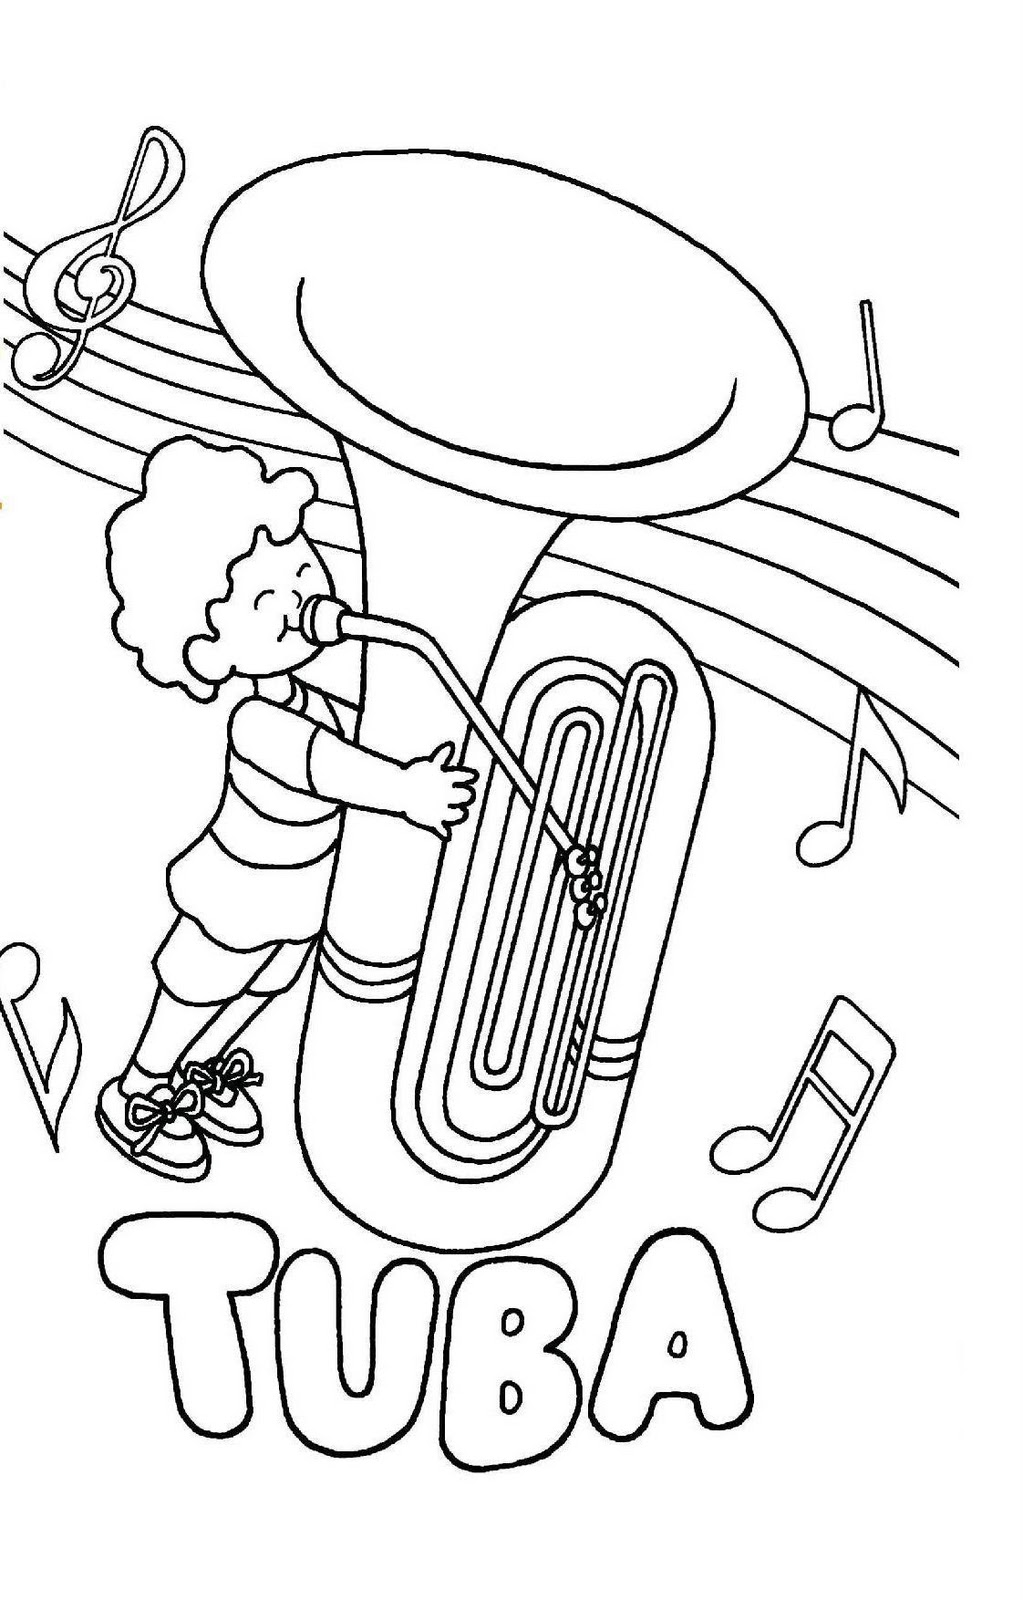 tubby the tuba coloring pages - photo#14